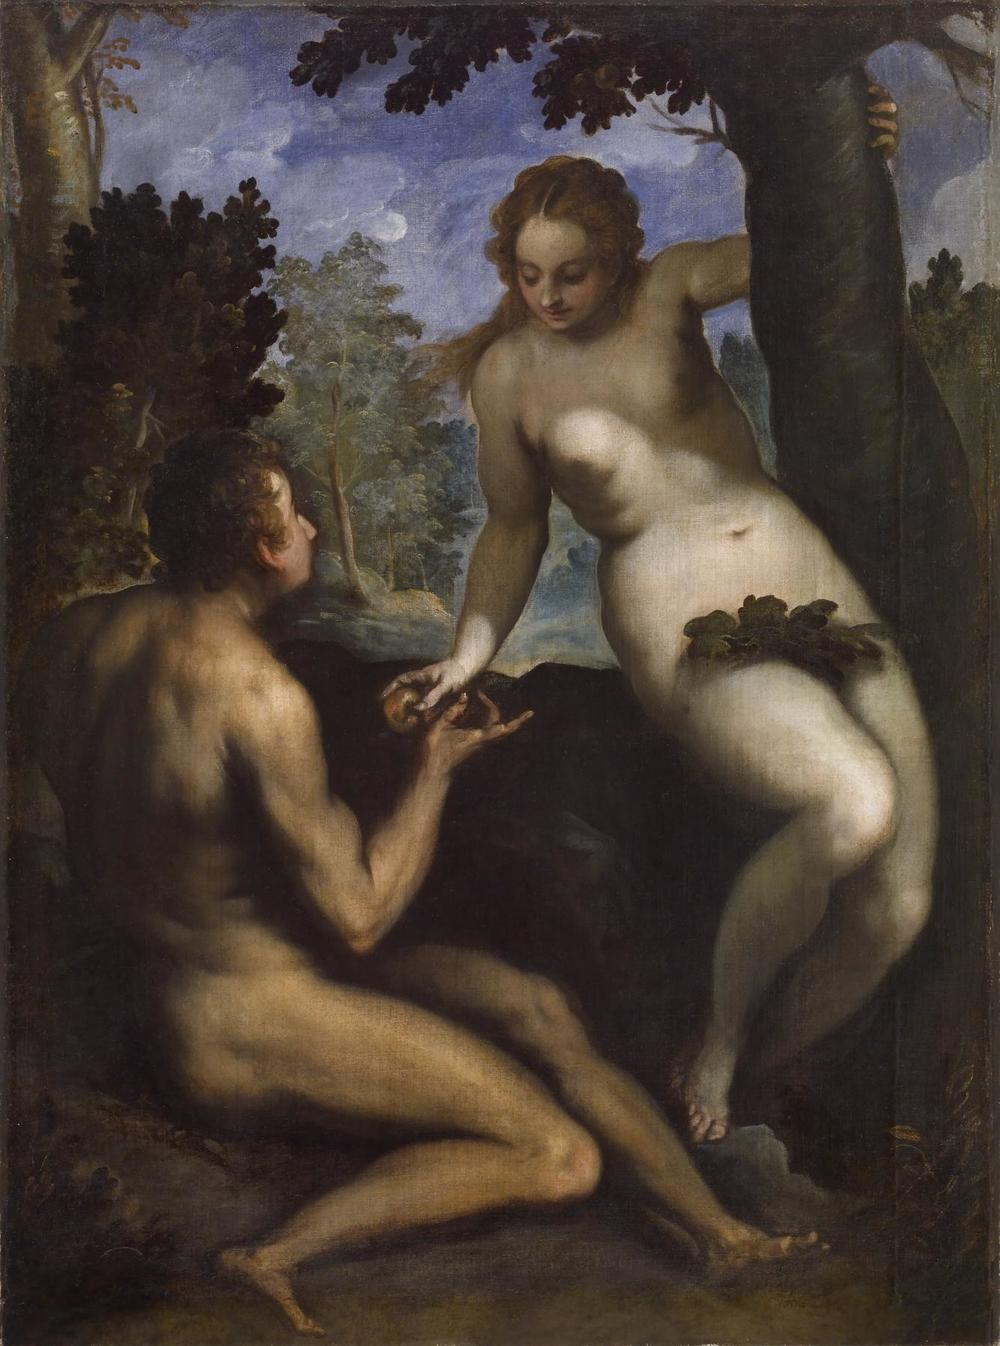 oil on canvas by Pietro Mera (thought to have lived between 1570 and 1639). Wikimedia commons ( link ).